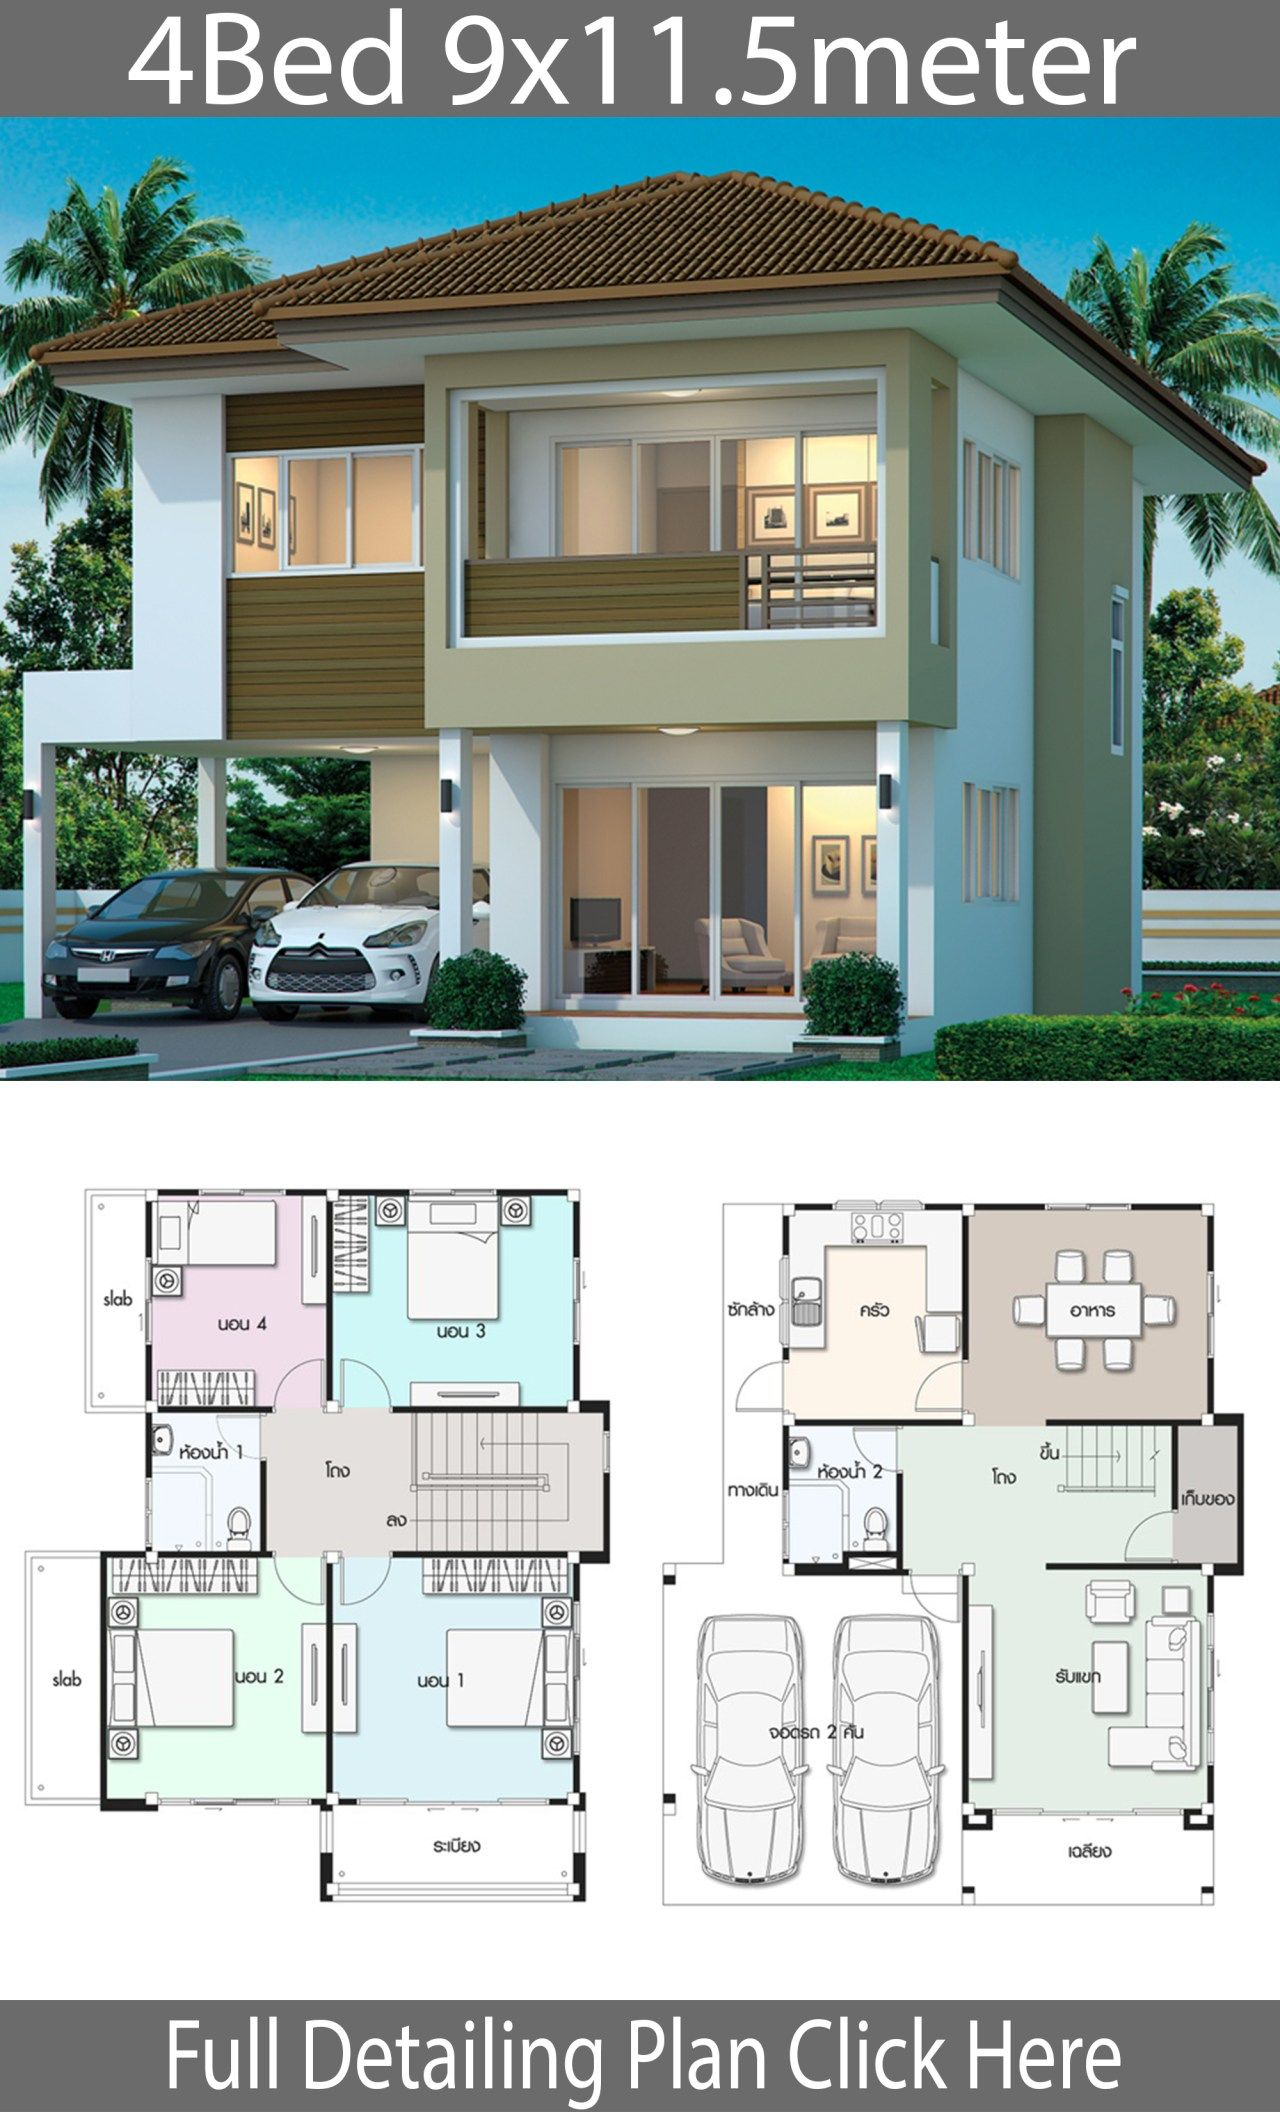 House Design Plan 9x11 5m With 4 Bedrooms Home Ideas House Plan Gallery Model House Plan House Plans Mansion